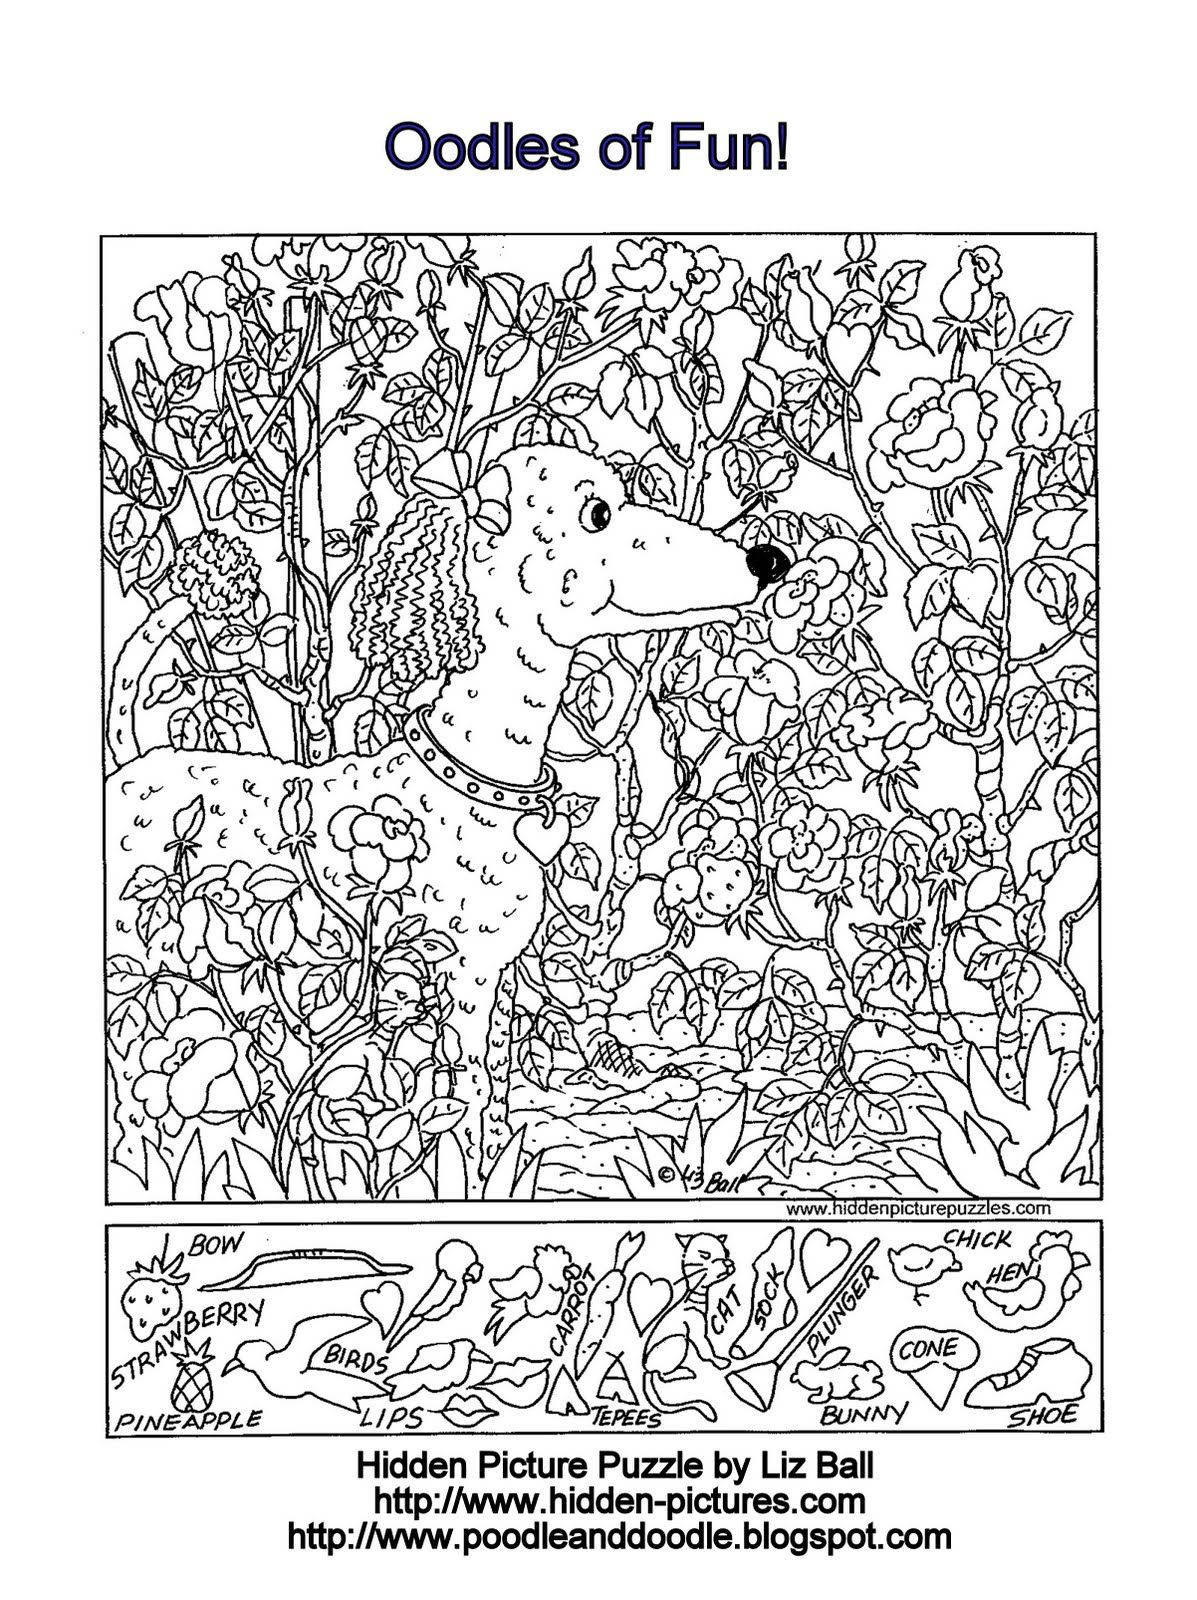 Hidden Picture Puzzle And Coloring Page Featuring A Poodle